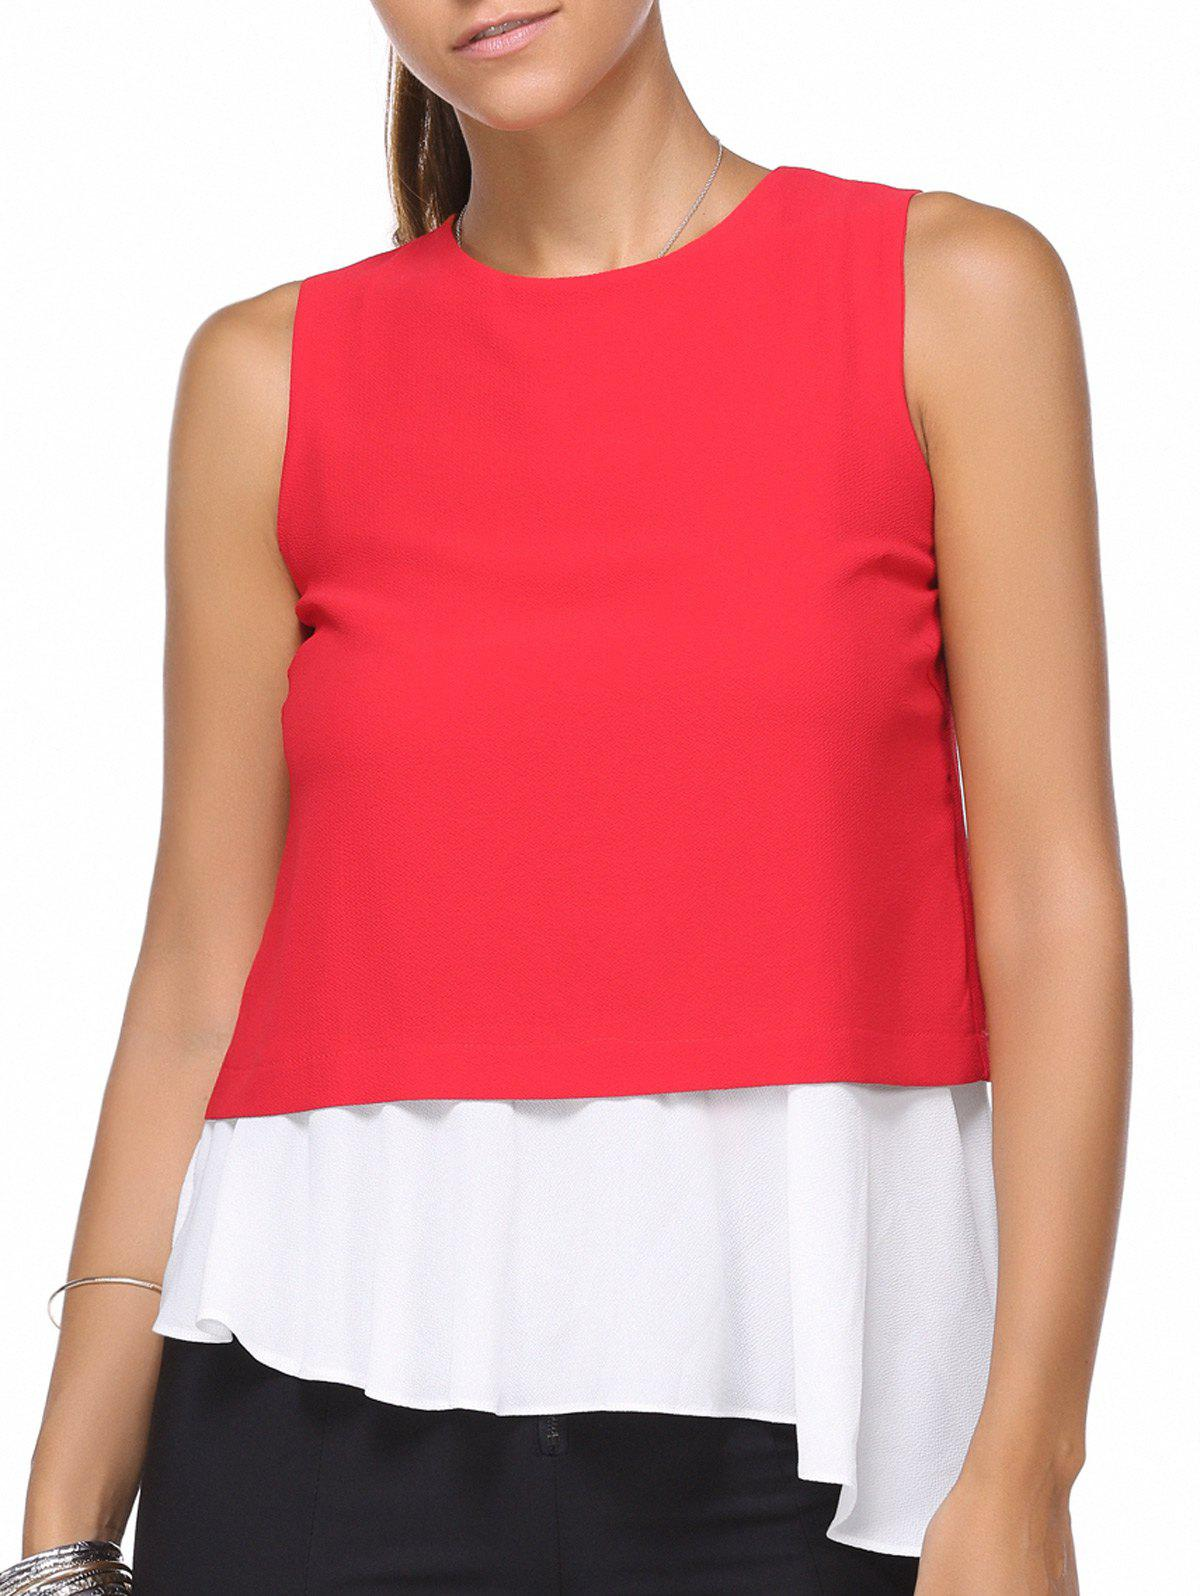 Chic Sleeveless Color Block Asymmetrical Women's Blouse - RED ONE SIZE(FIT SIZE XS TO M)